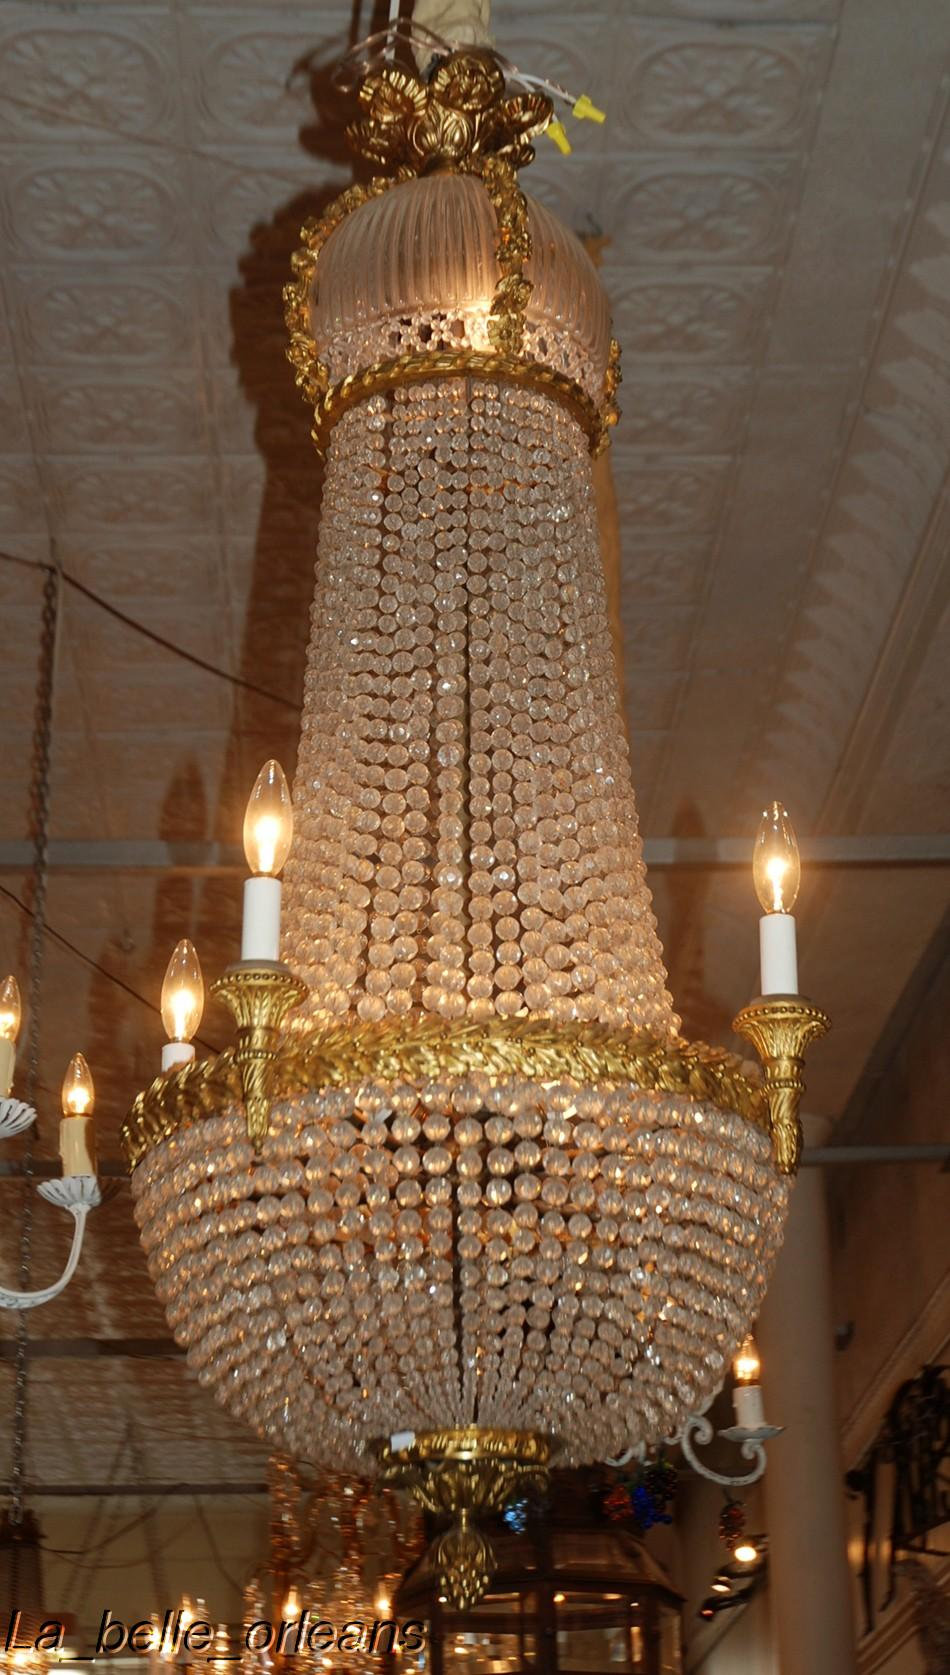 19TH C FRENCH EMPIRE BRONZE AND BACCARAT CHANDELIER For